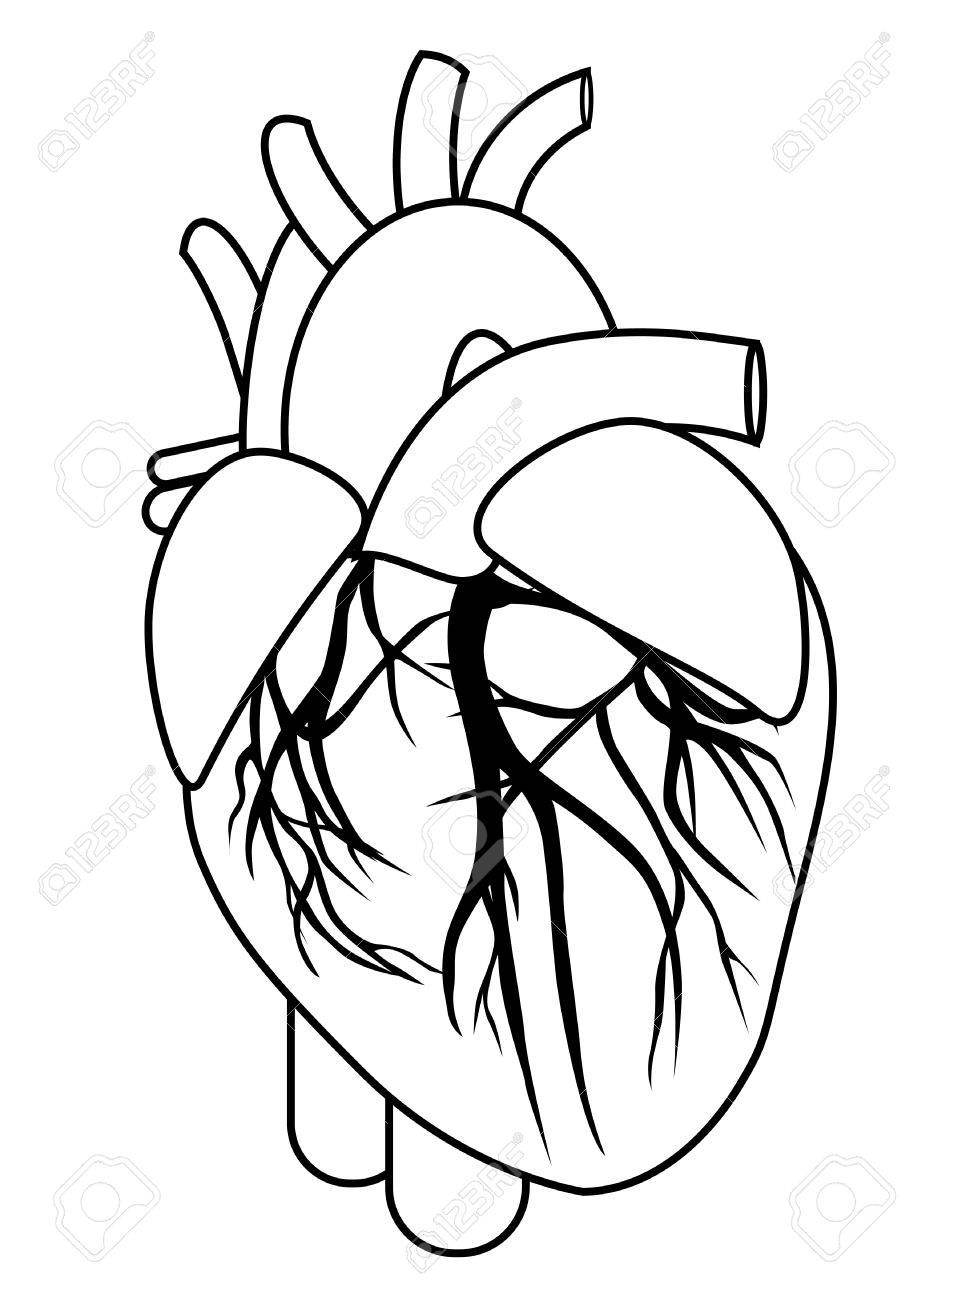 Human heart anatomy from a healthy body isolated on white background...